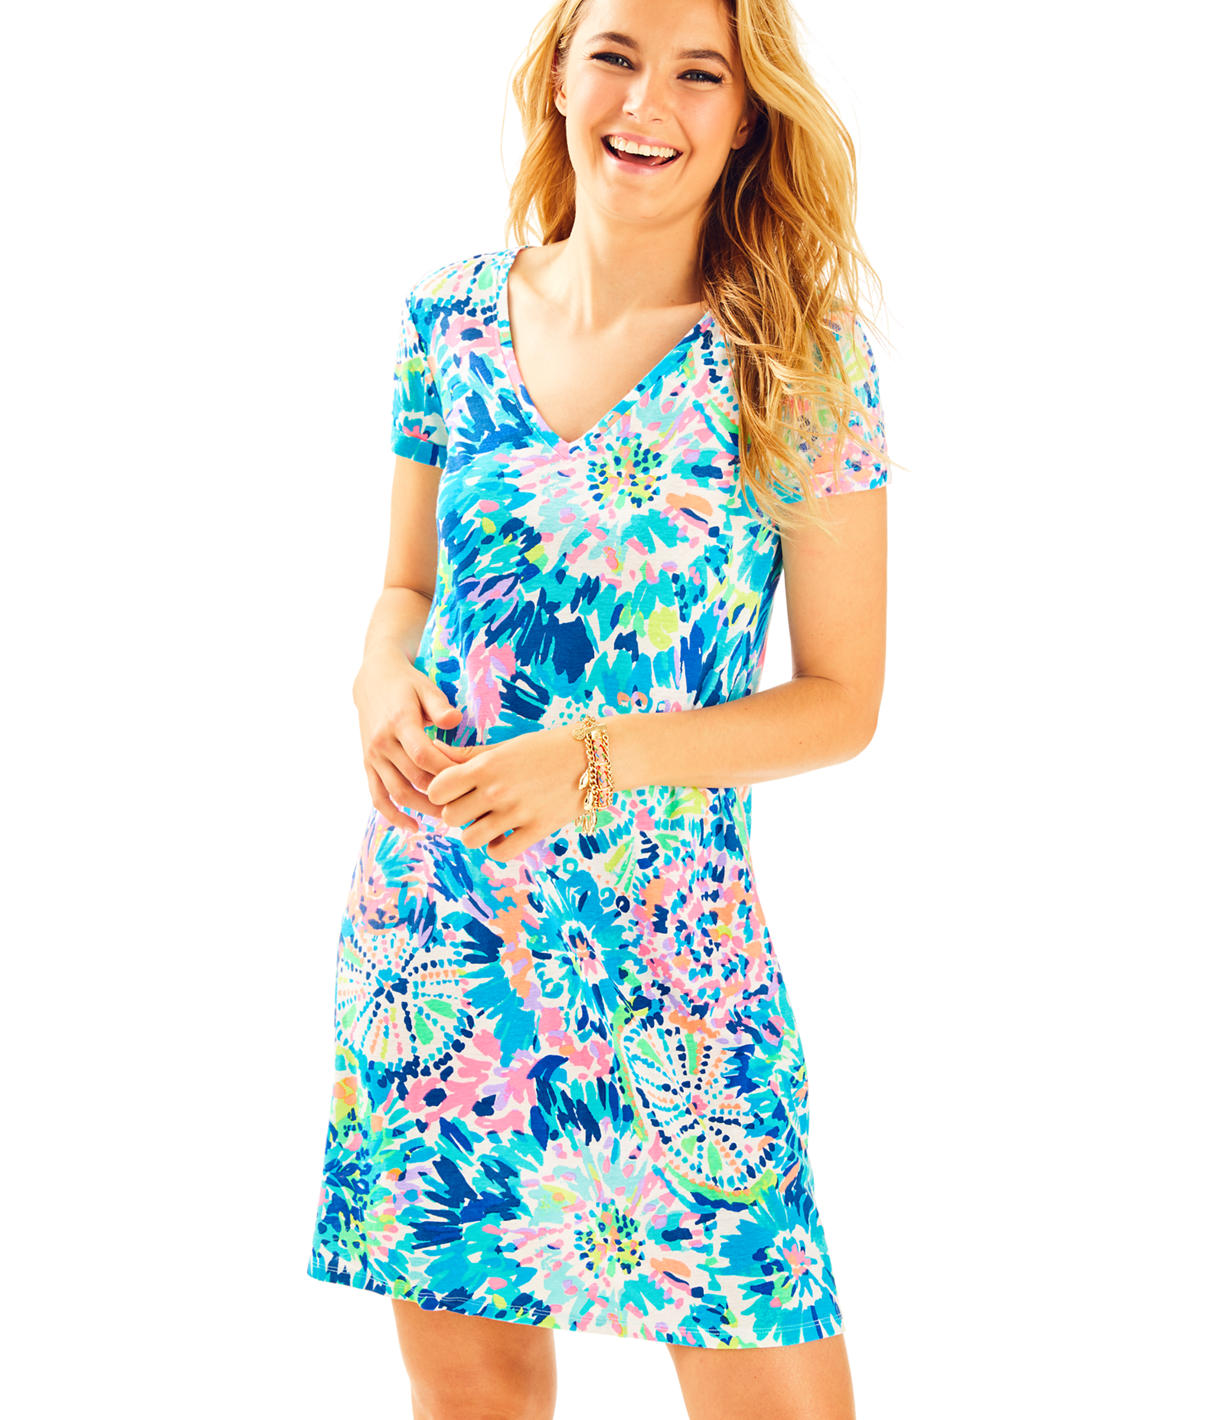 Lilly Pulitzer Lilly Pulitzer Womens Jessica Short Sleeve Dress